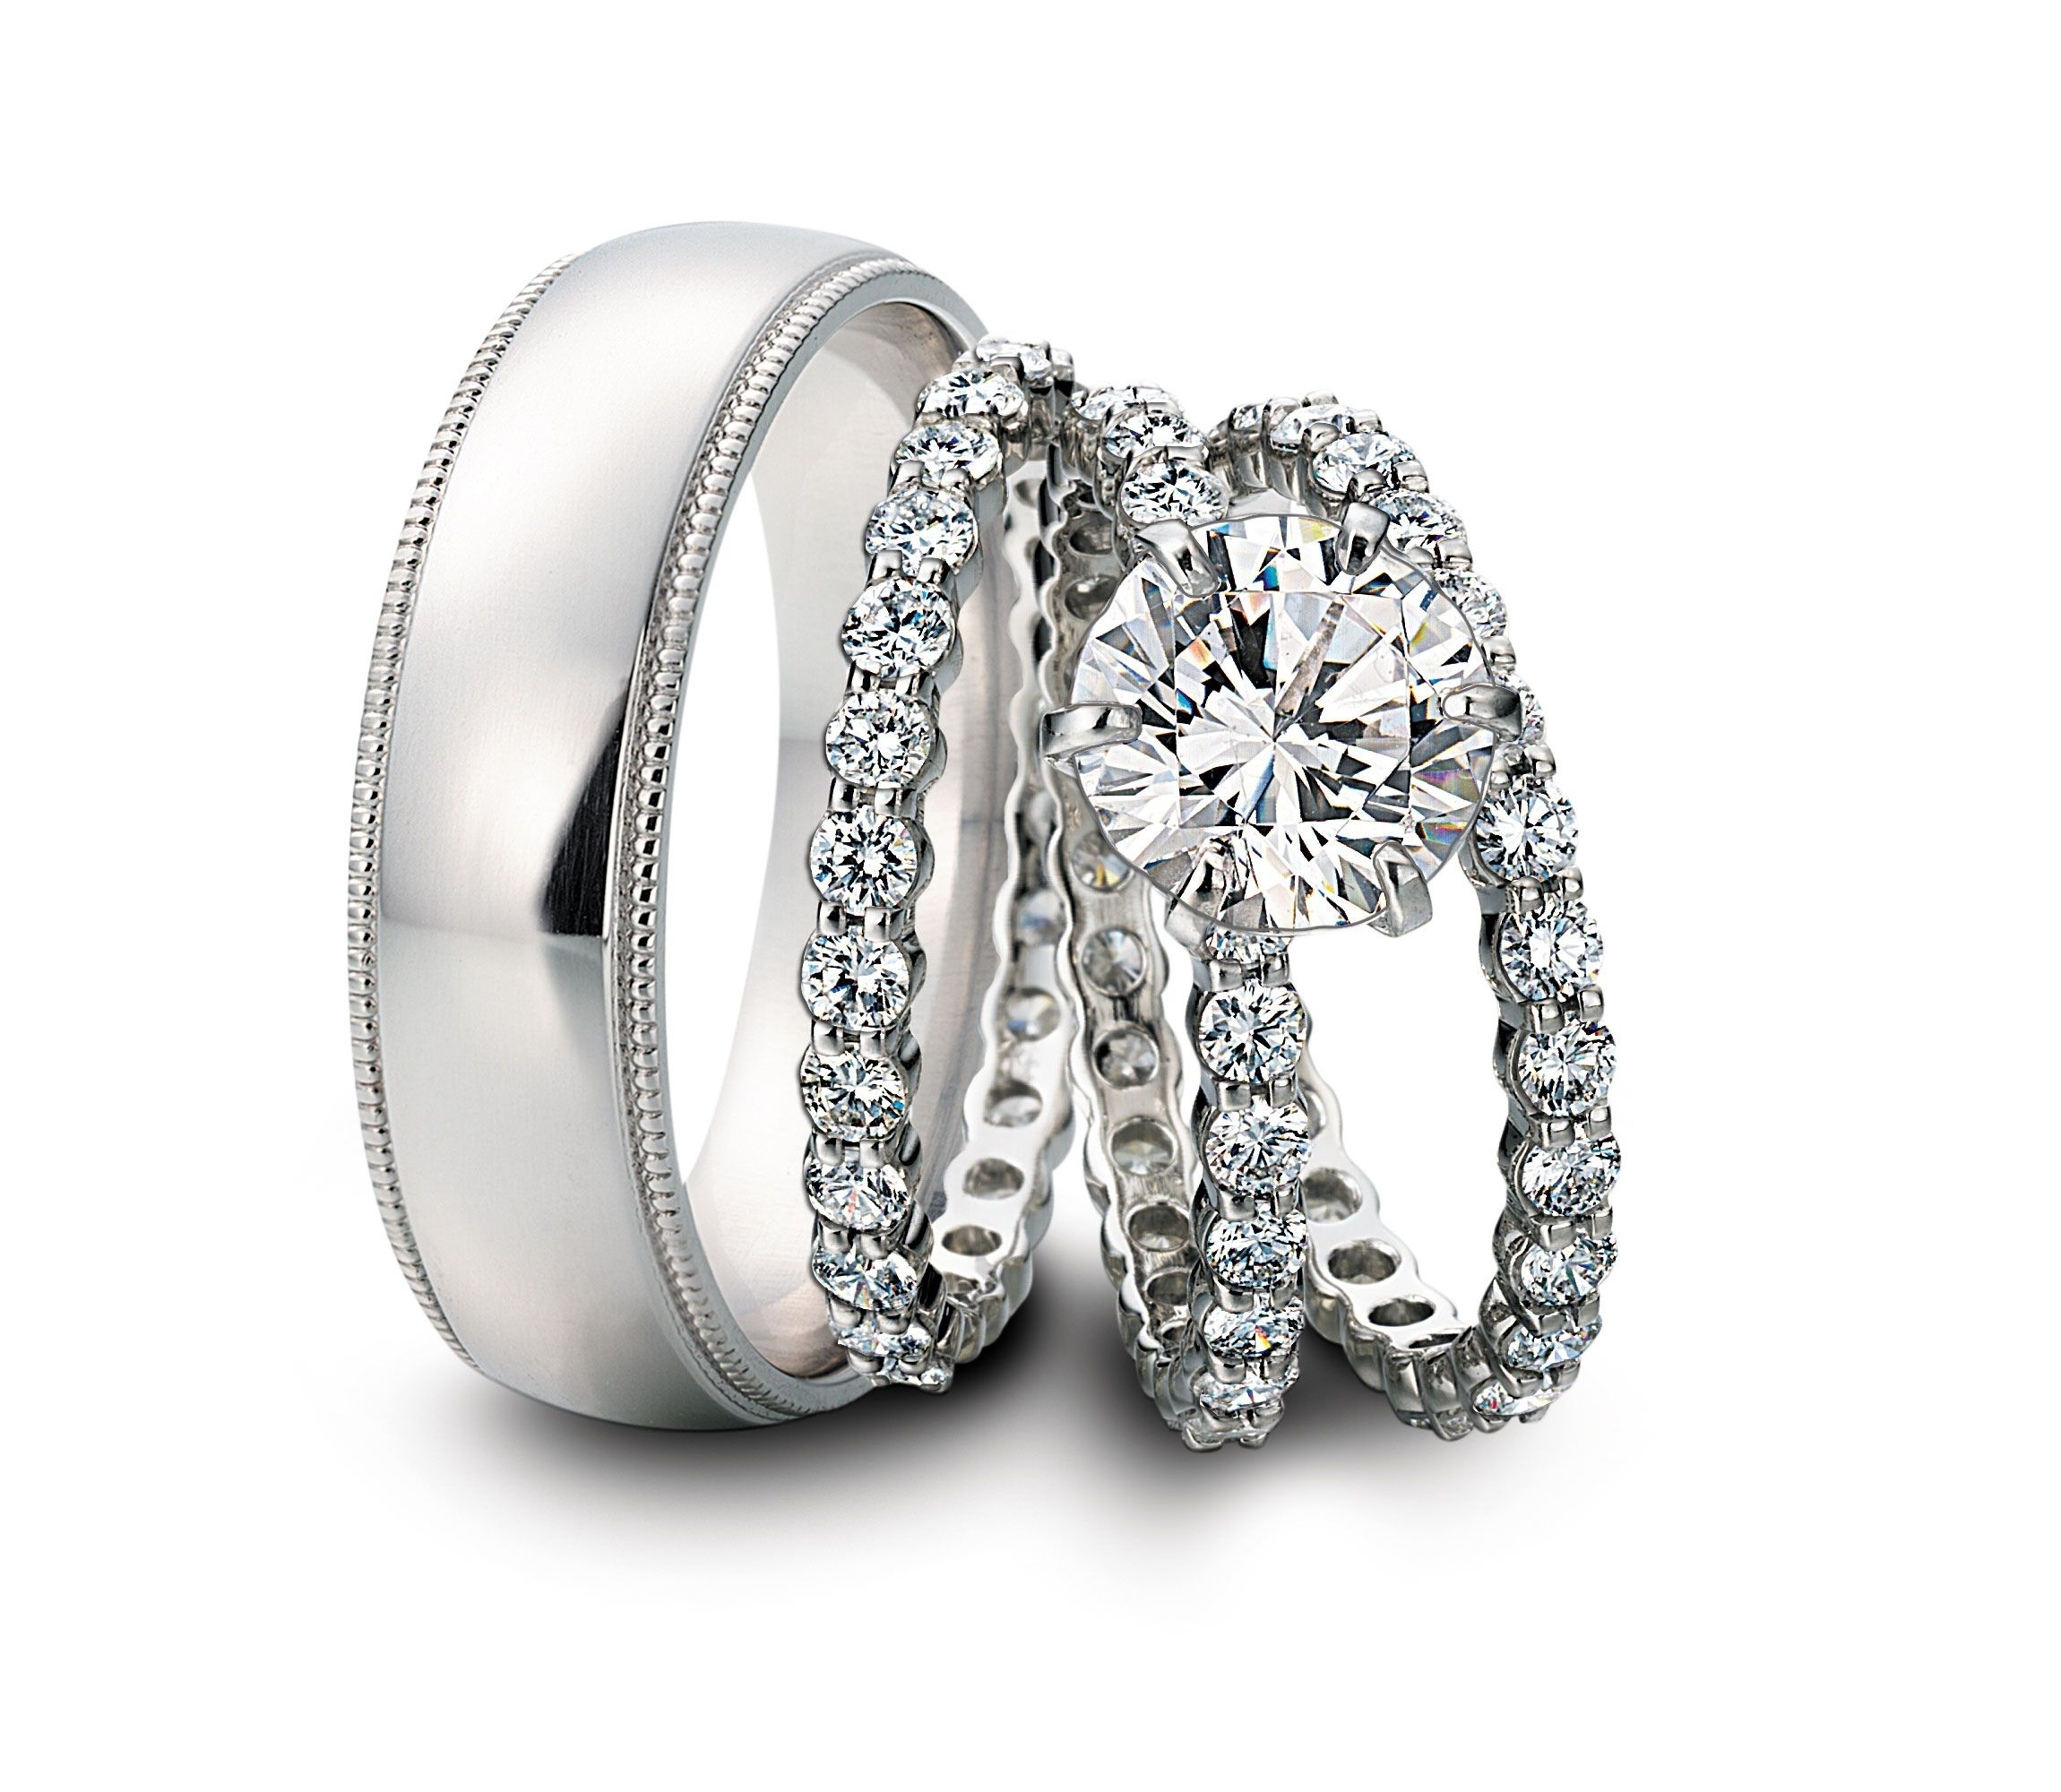 Beautiful His And Hers Matching Wedding Ring Sets Cheap Jewelry Within Most Recent His And Her Wedding Bands Sets (View 7 of 15)